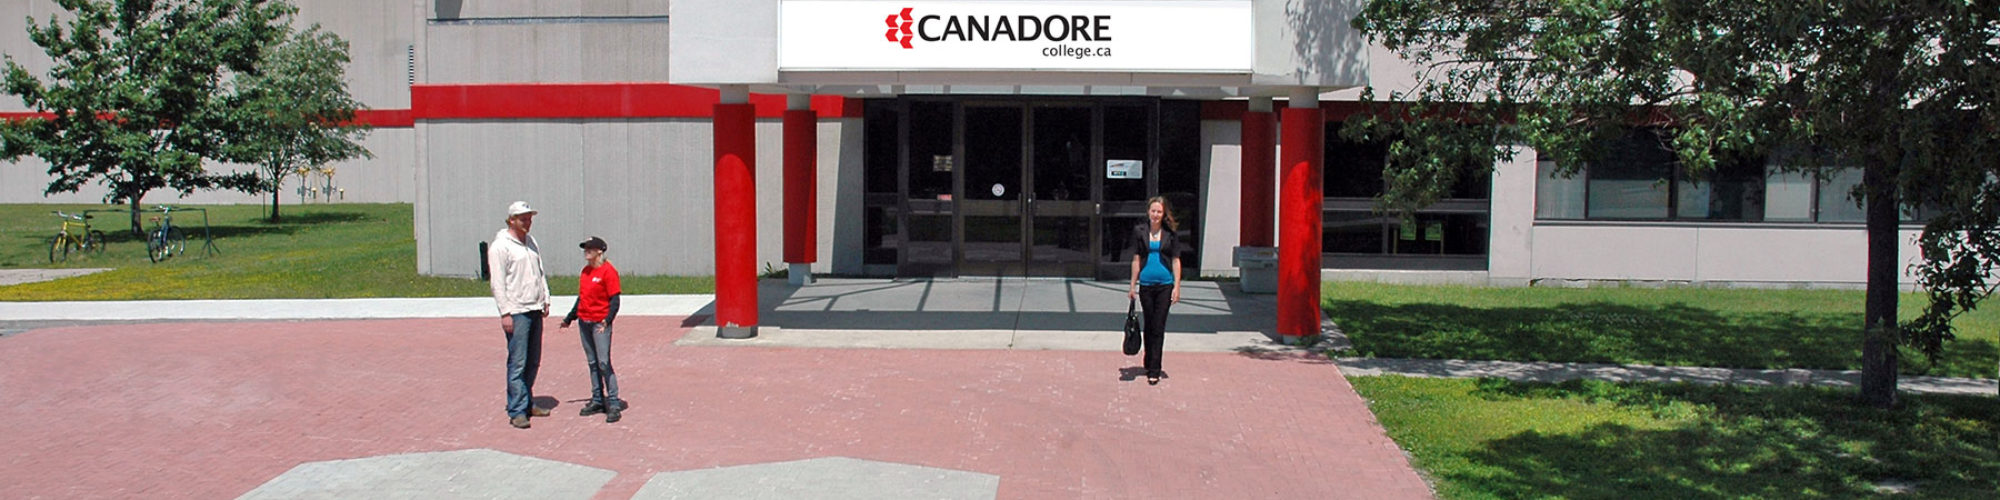 The Global Exposure Canada Education Consultants In Delhi Overseas Education Consultants In Delhi Study Abroad Consultants In Delhi